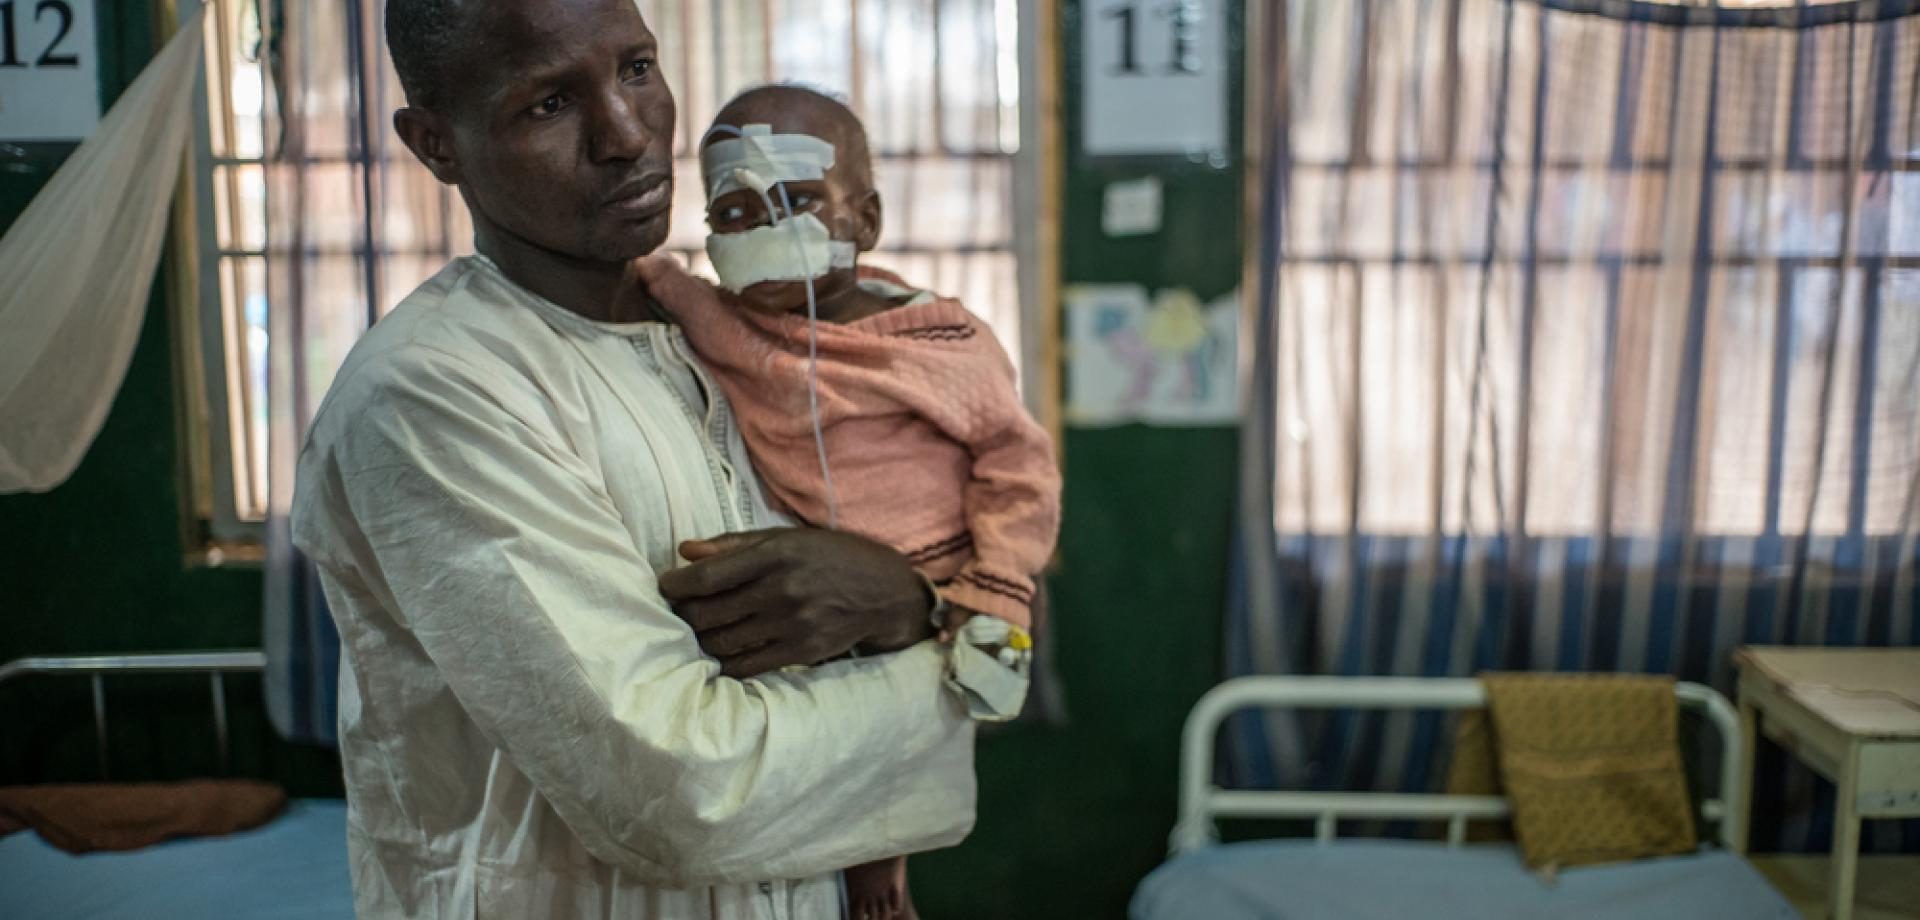 Two-year-old Mohammed was brought to Sokoto hospital after wounds caused by noma made it too difficult for him to eat